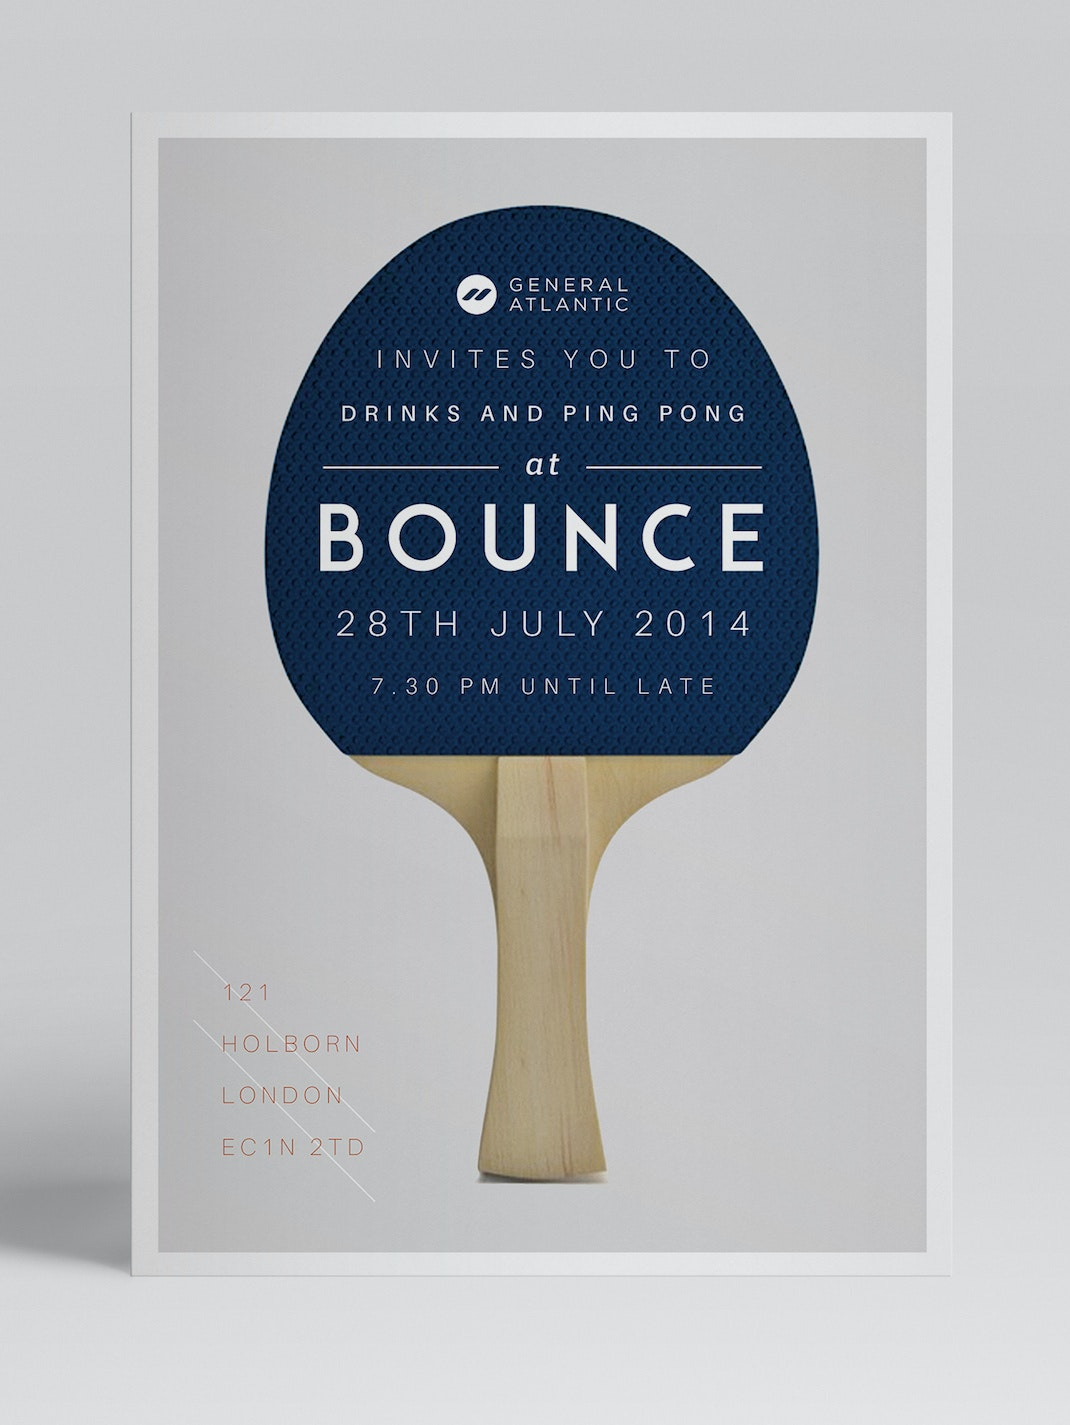 Minimalist flyer with a table tennis design